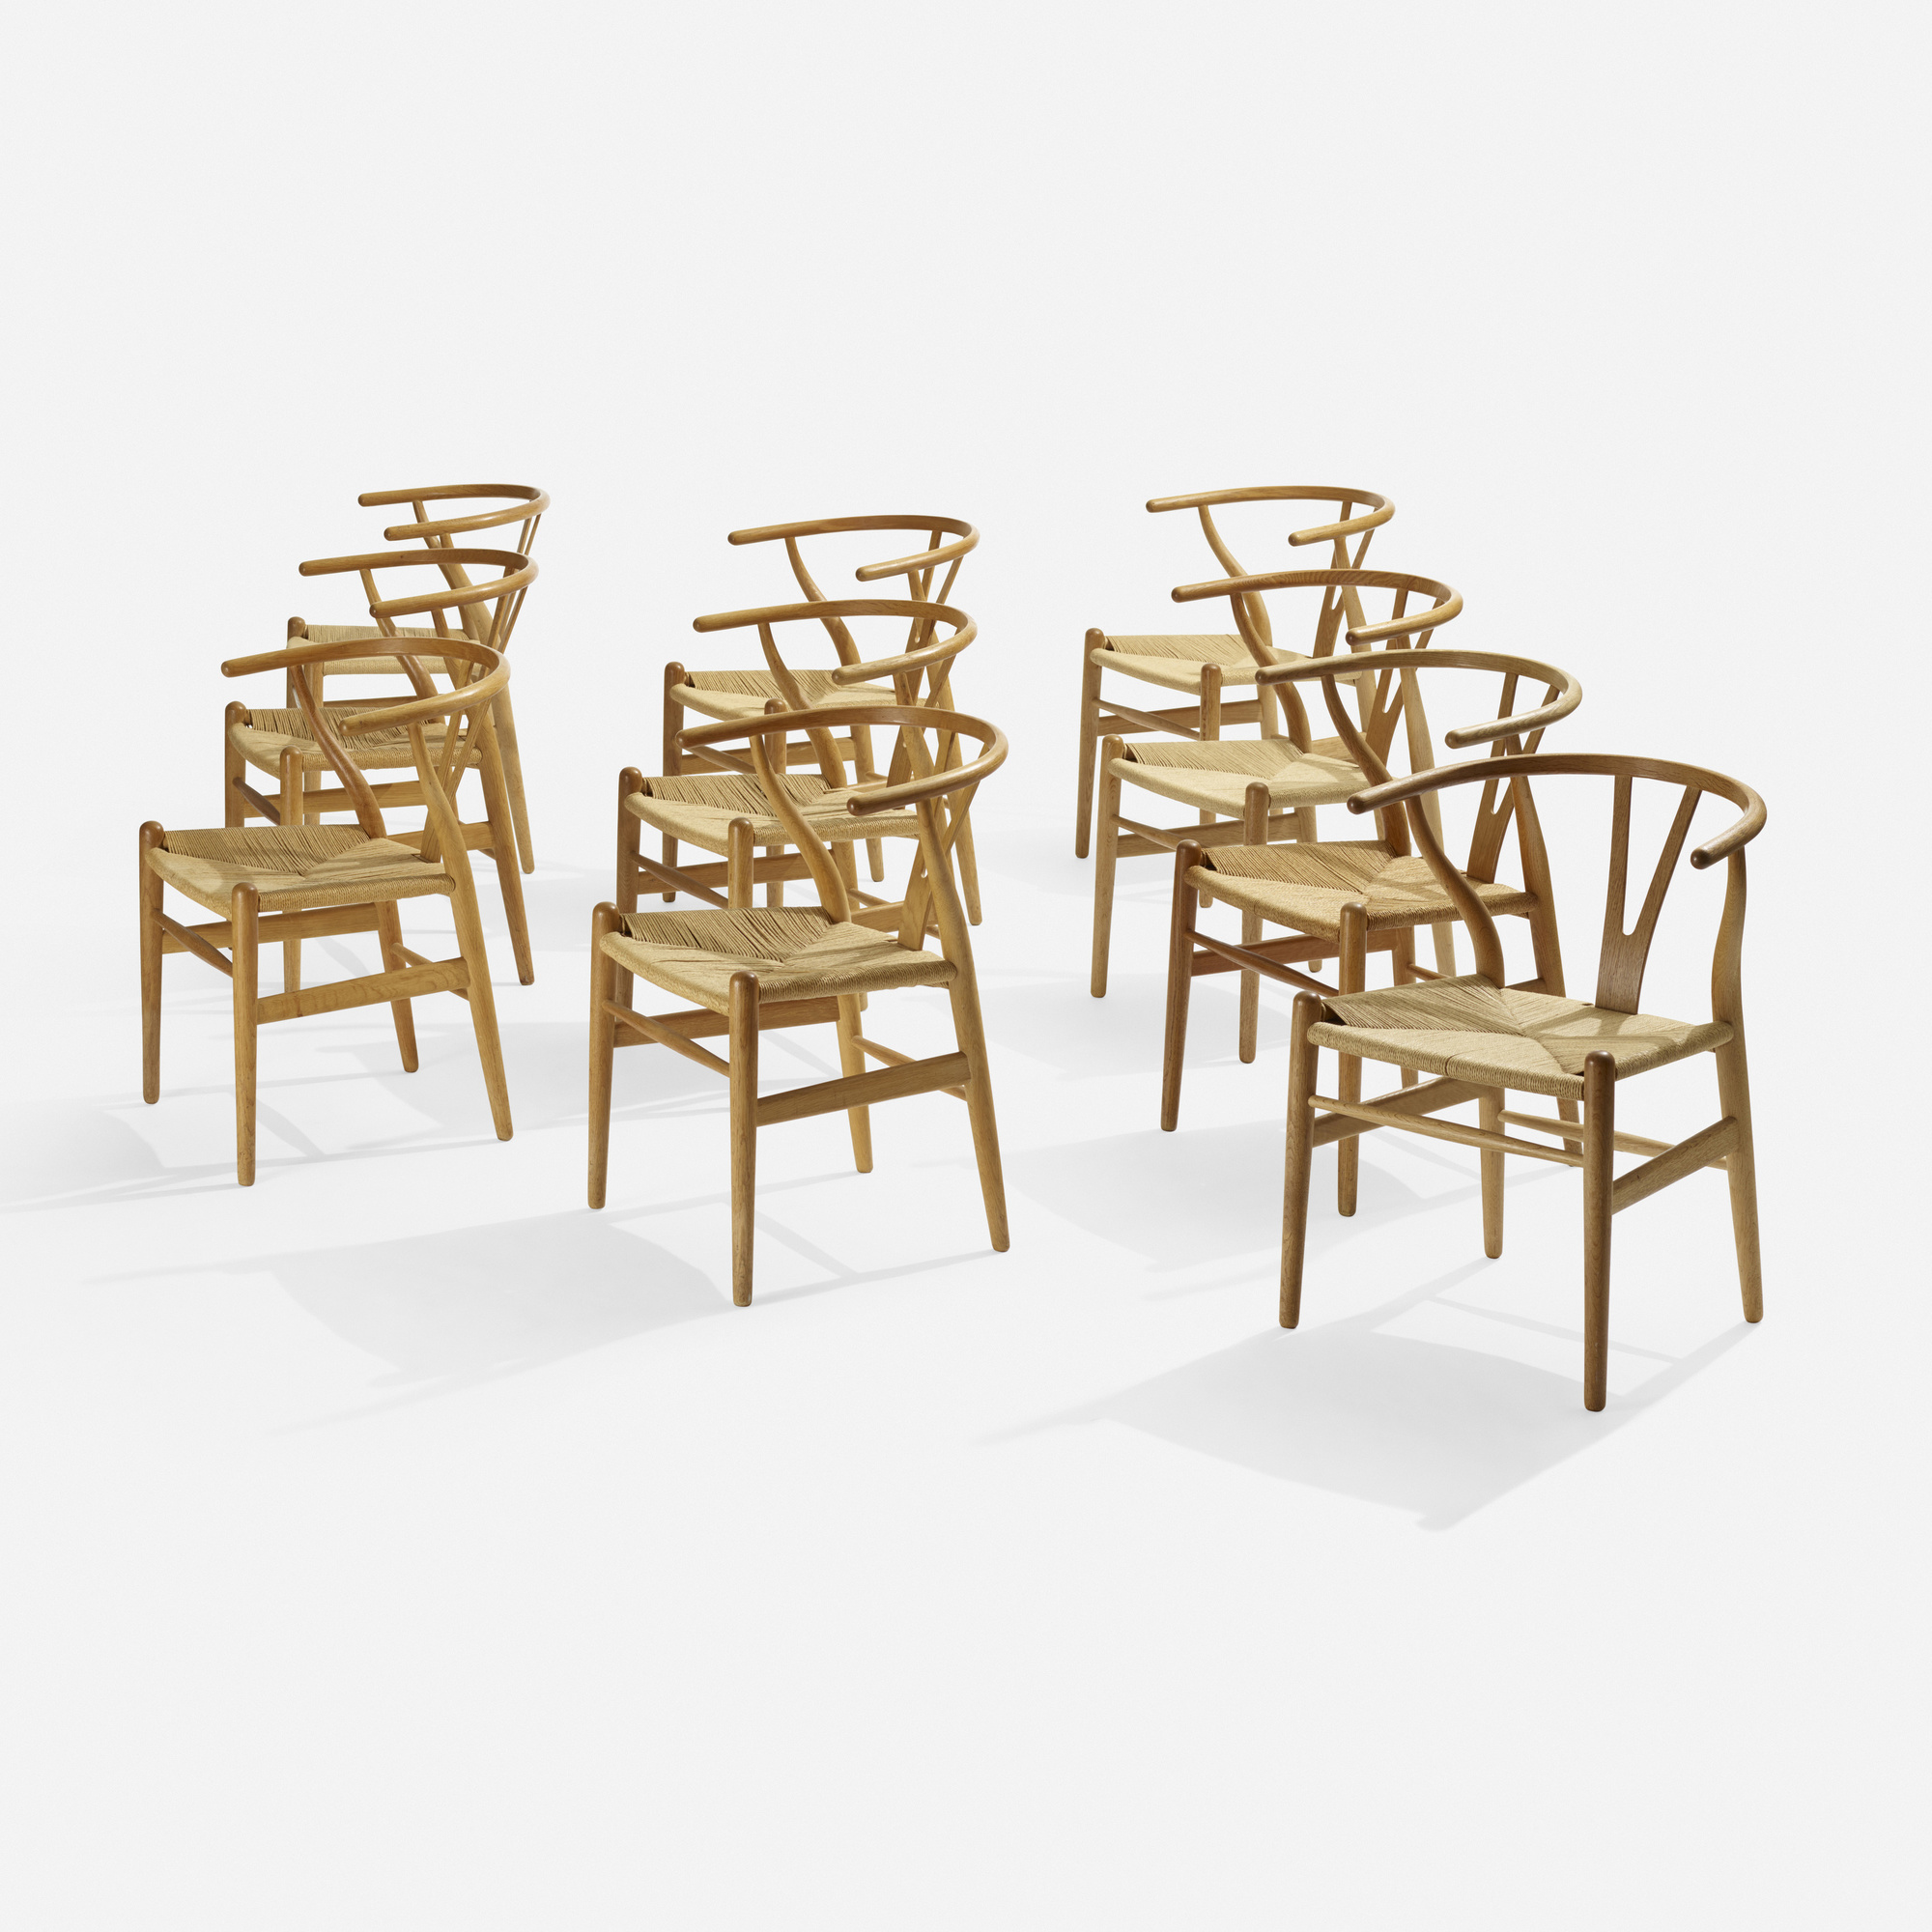 165 Hans J Wegner Wishbone chairs model CH24 set of ten